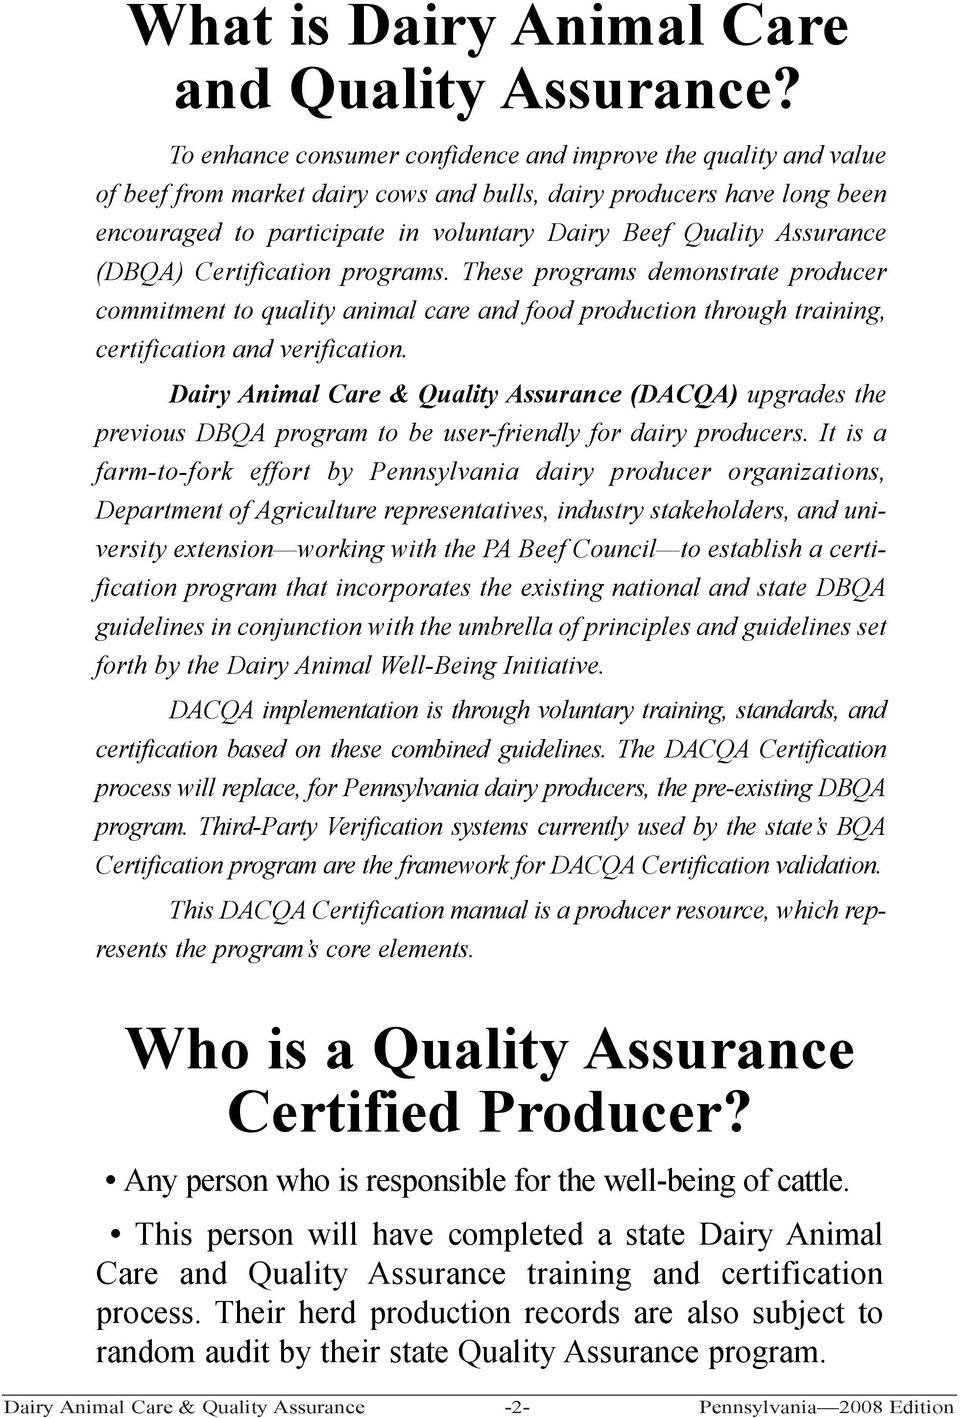 Assurance (DBQA) Certification programs. These programs demonstrate producer commitment to quality animal care and food production through training, certification and verification.